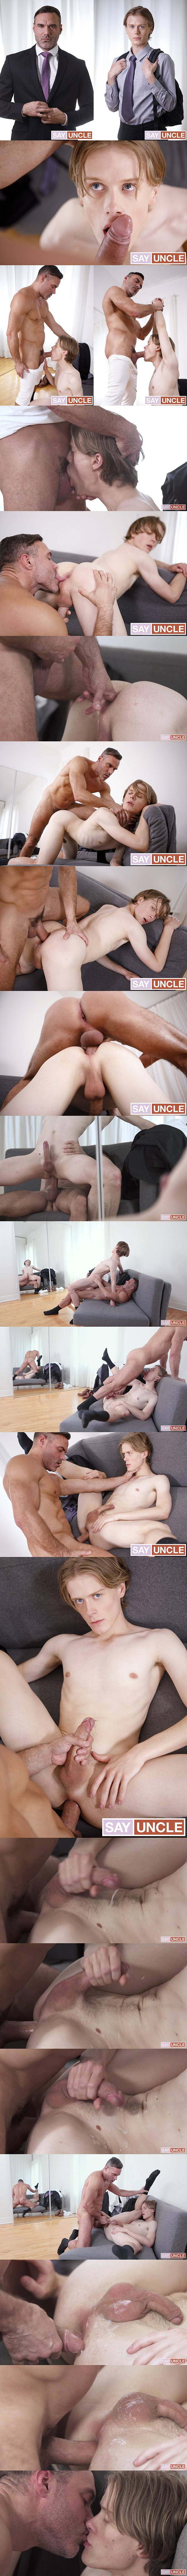 Missionaryboys - Manly gay porn star President Skye (aka Manuel Skye) barebacks twink boy Elder Hill (aka Adrian Hill) in different positions before he fucks the cum out of Adrian and breeds him in Missionary Surveillance 02